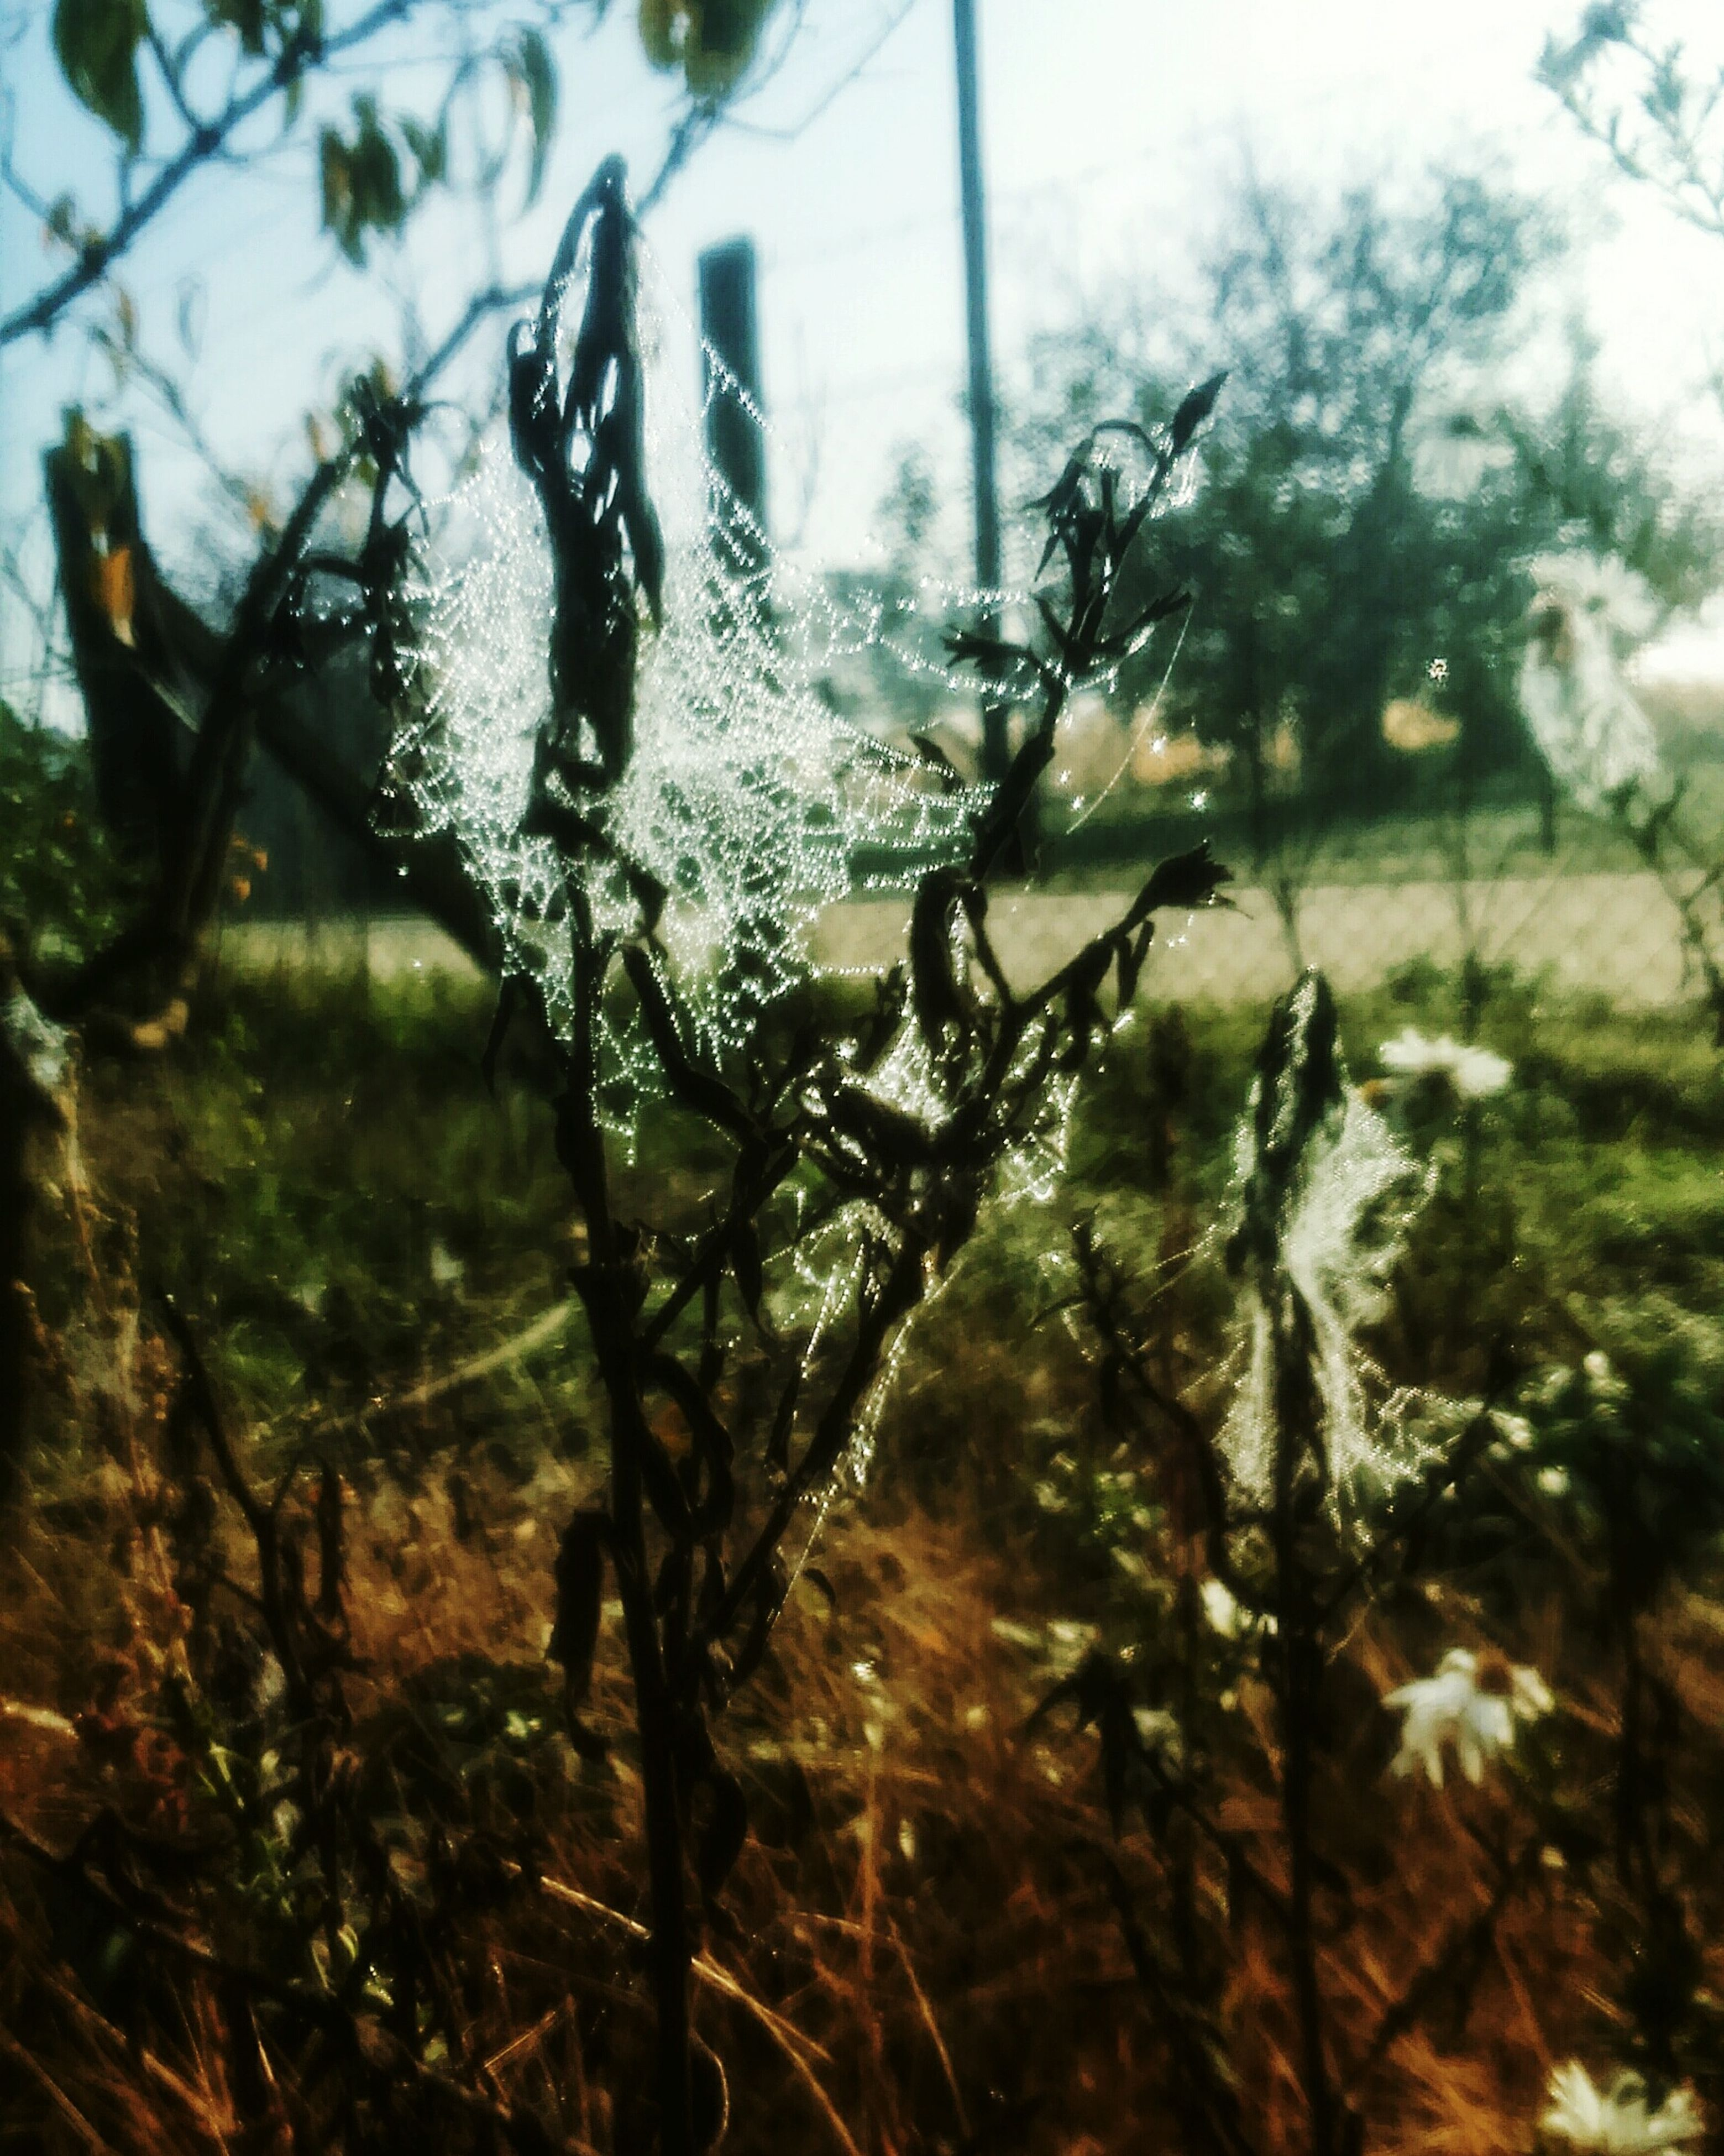 water, tree, focus on foreground, wet, growth, drop, nature, close-up, sunlight, rain, plant, grass, tranquility, day, selective focus, transparent, reflection, window, outdoors, no people